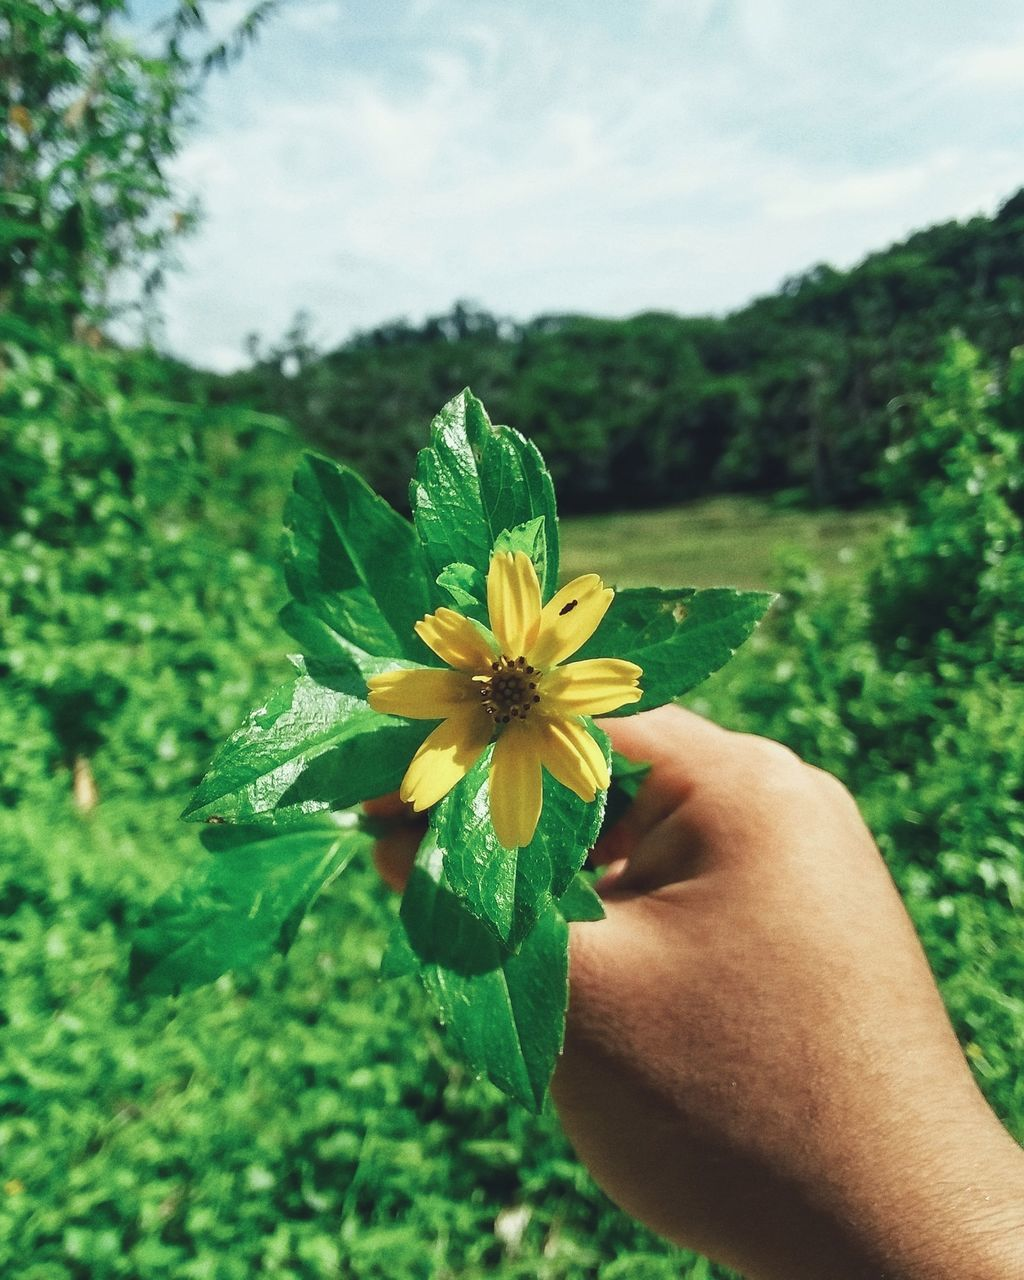 flower, human hand, human body part, nature, real people, beauty in nature, fragility, one person, petal, freshness, holding, outdoors, day, flower head, green color, yellow, close-up, plant, growth, lifestyles, sky, people